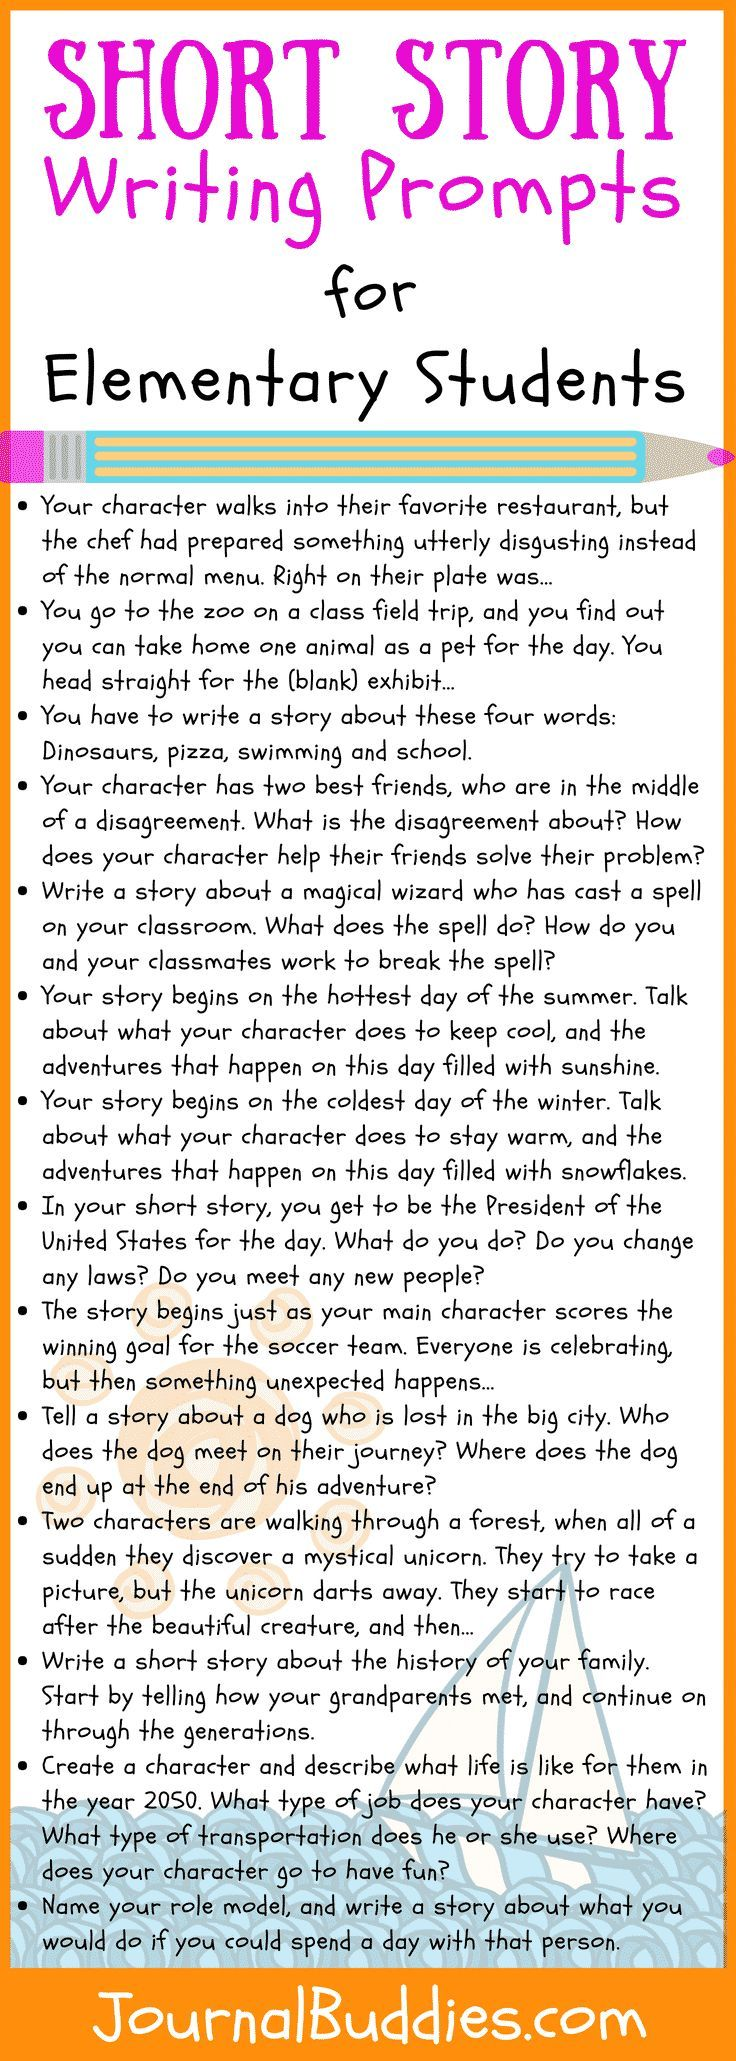 Short Story Writing Prompts For Elementary Students Short Story Writing Prompts Elementary Writing Prompts Writing Prompts For Kids Creative writing prompts for third